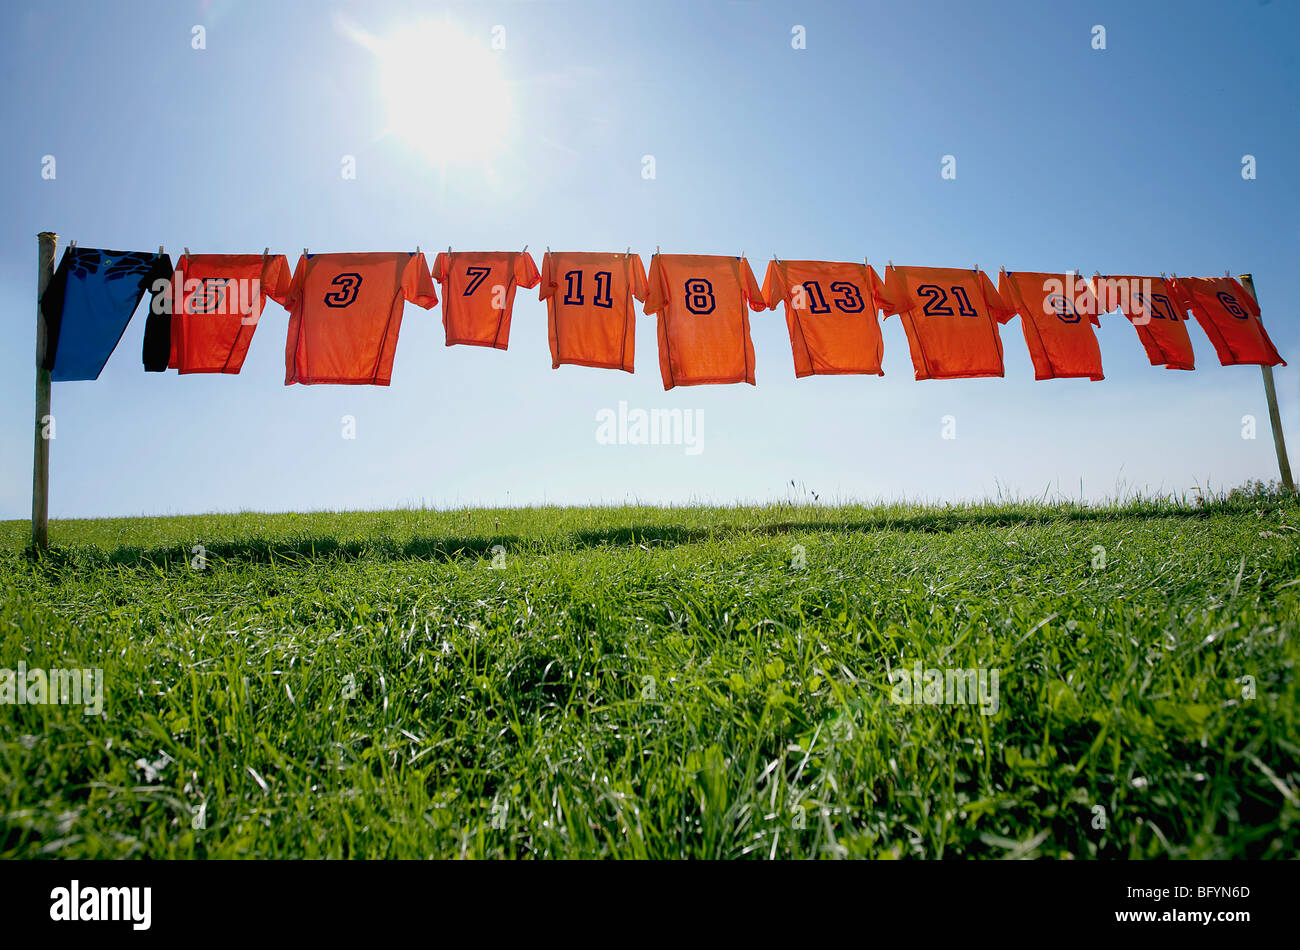 clothesline stockfotos clothesline bilder alamy. Black Bedroom Furniture Sets. Home Design Ideas